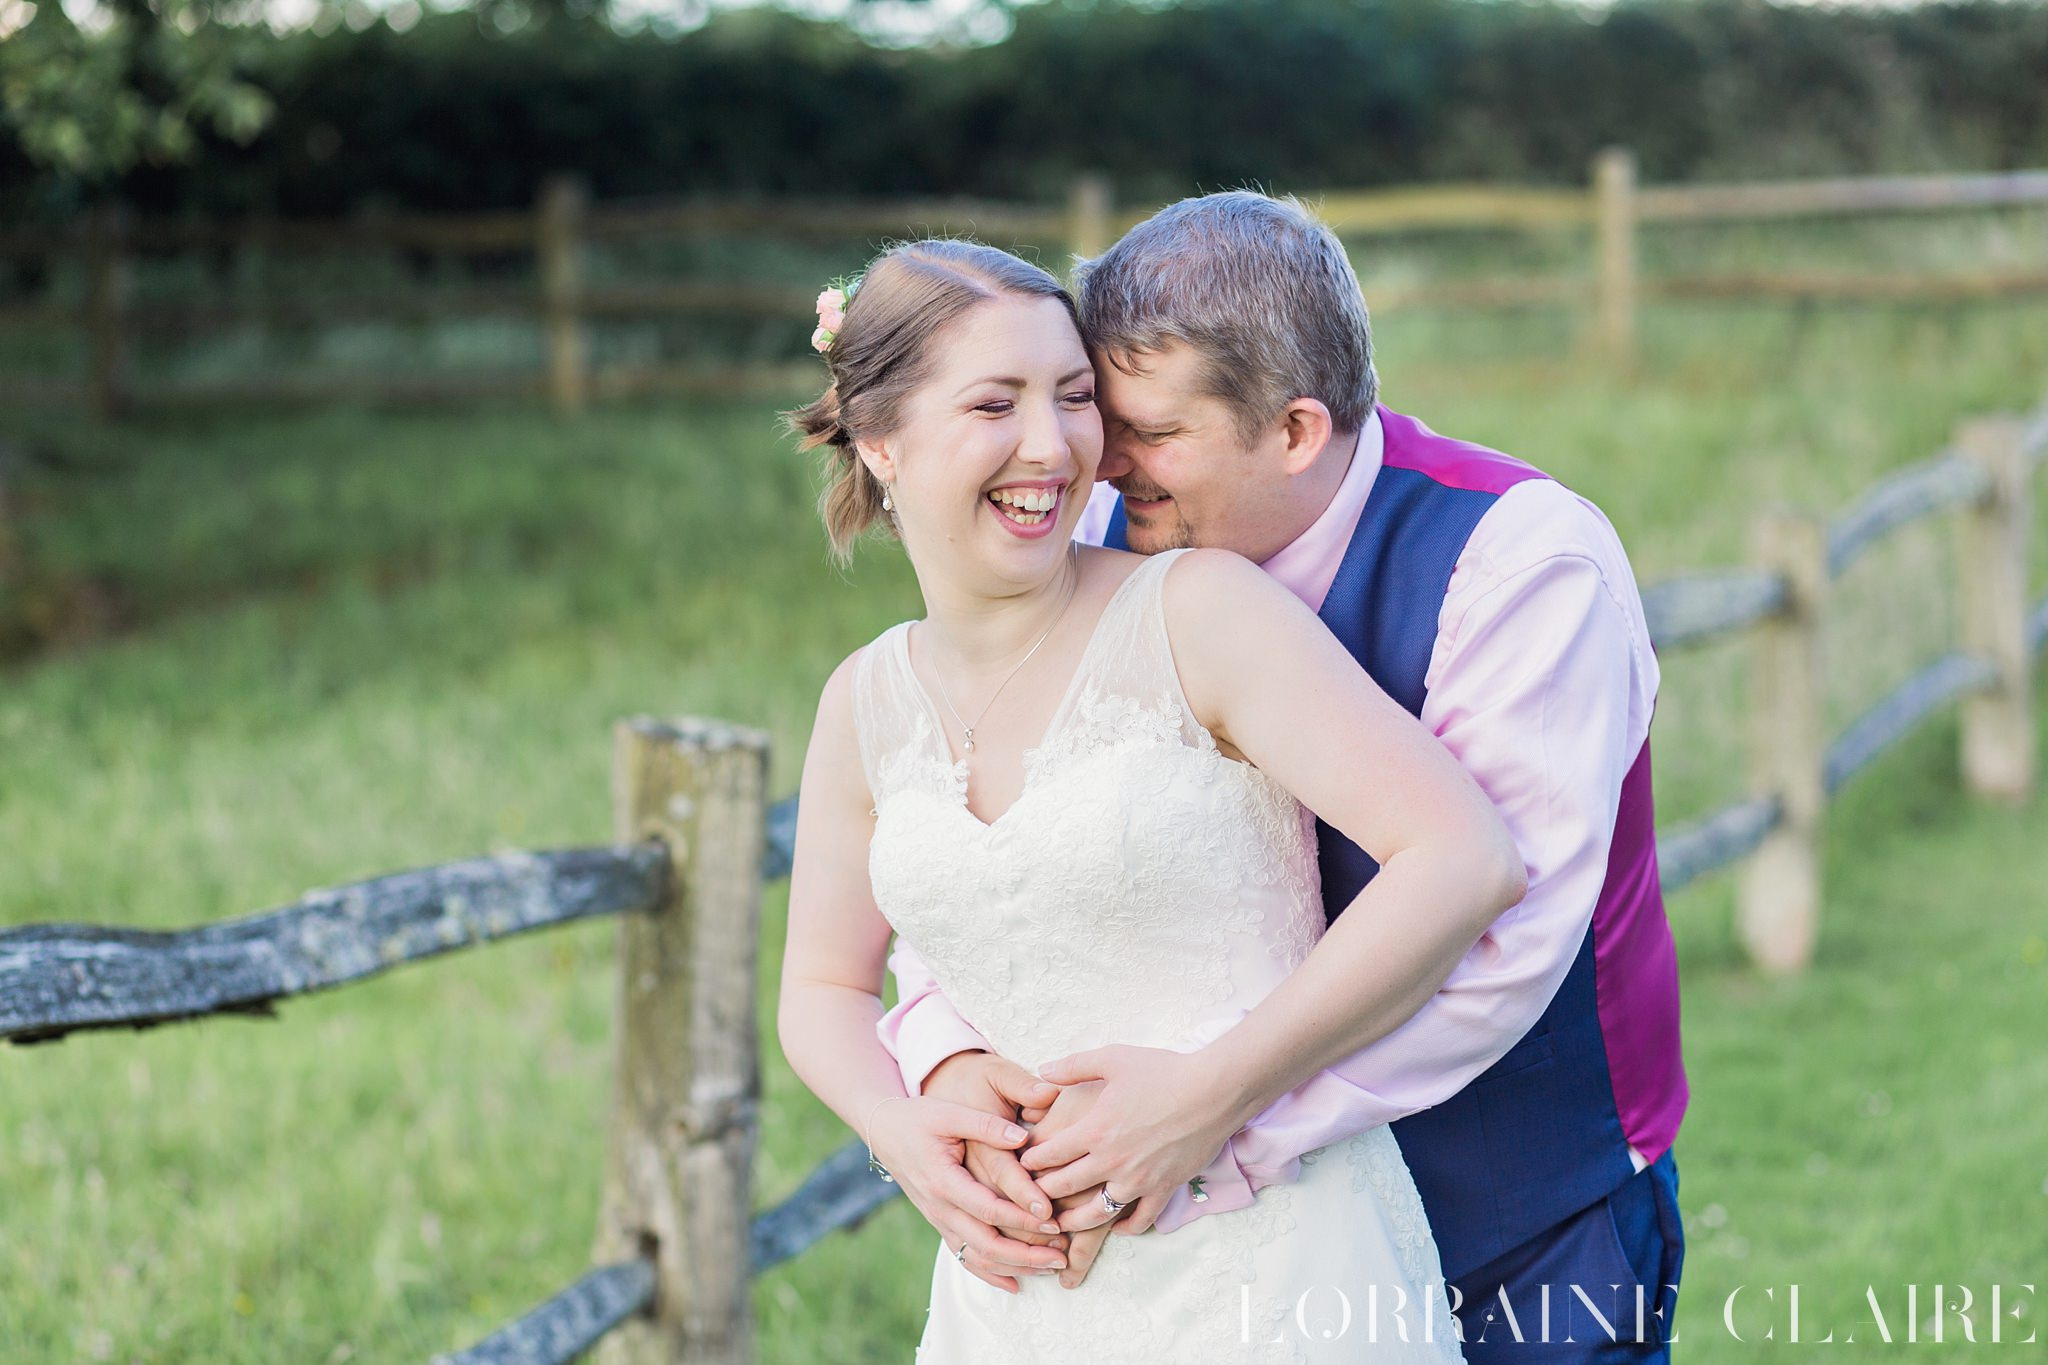 MR & MRS JACKSON BLOG-45_GATE STREET BARN WEDDING PHOTOGRAPHY